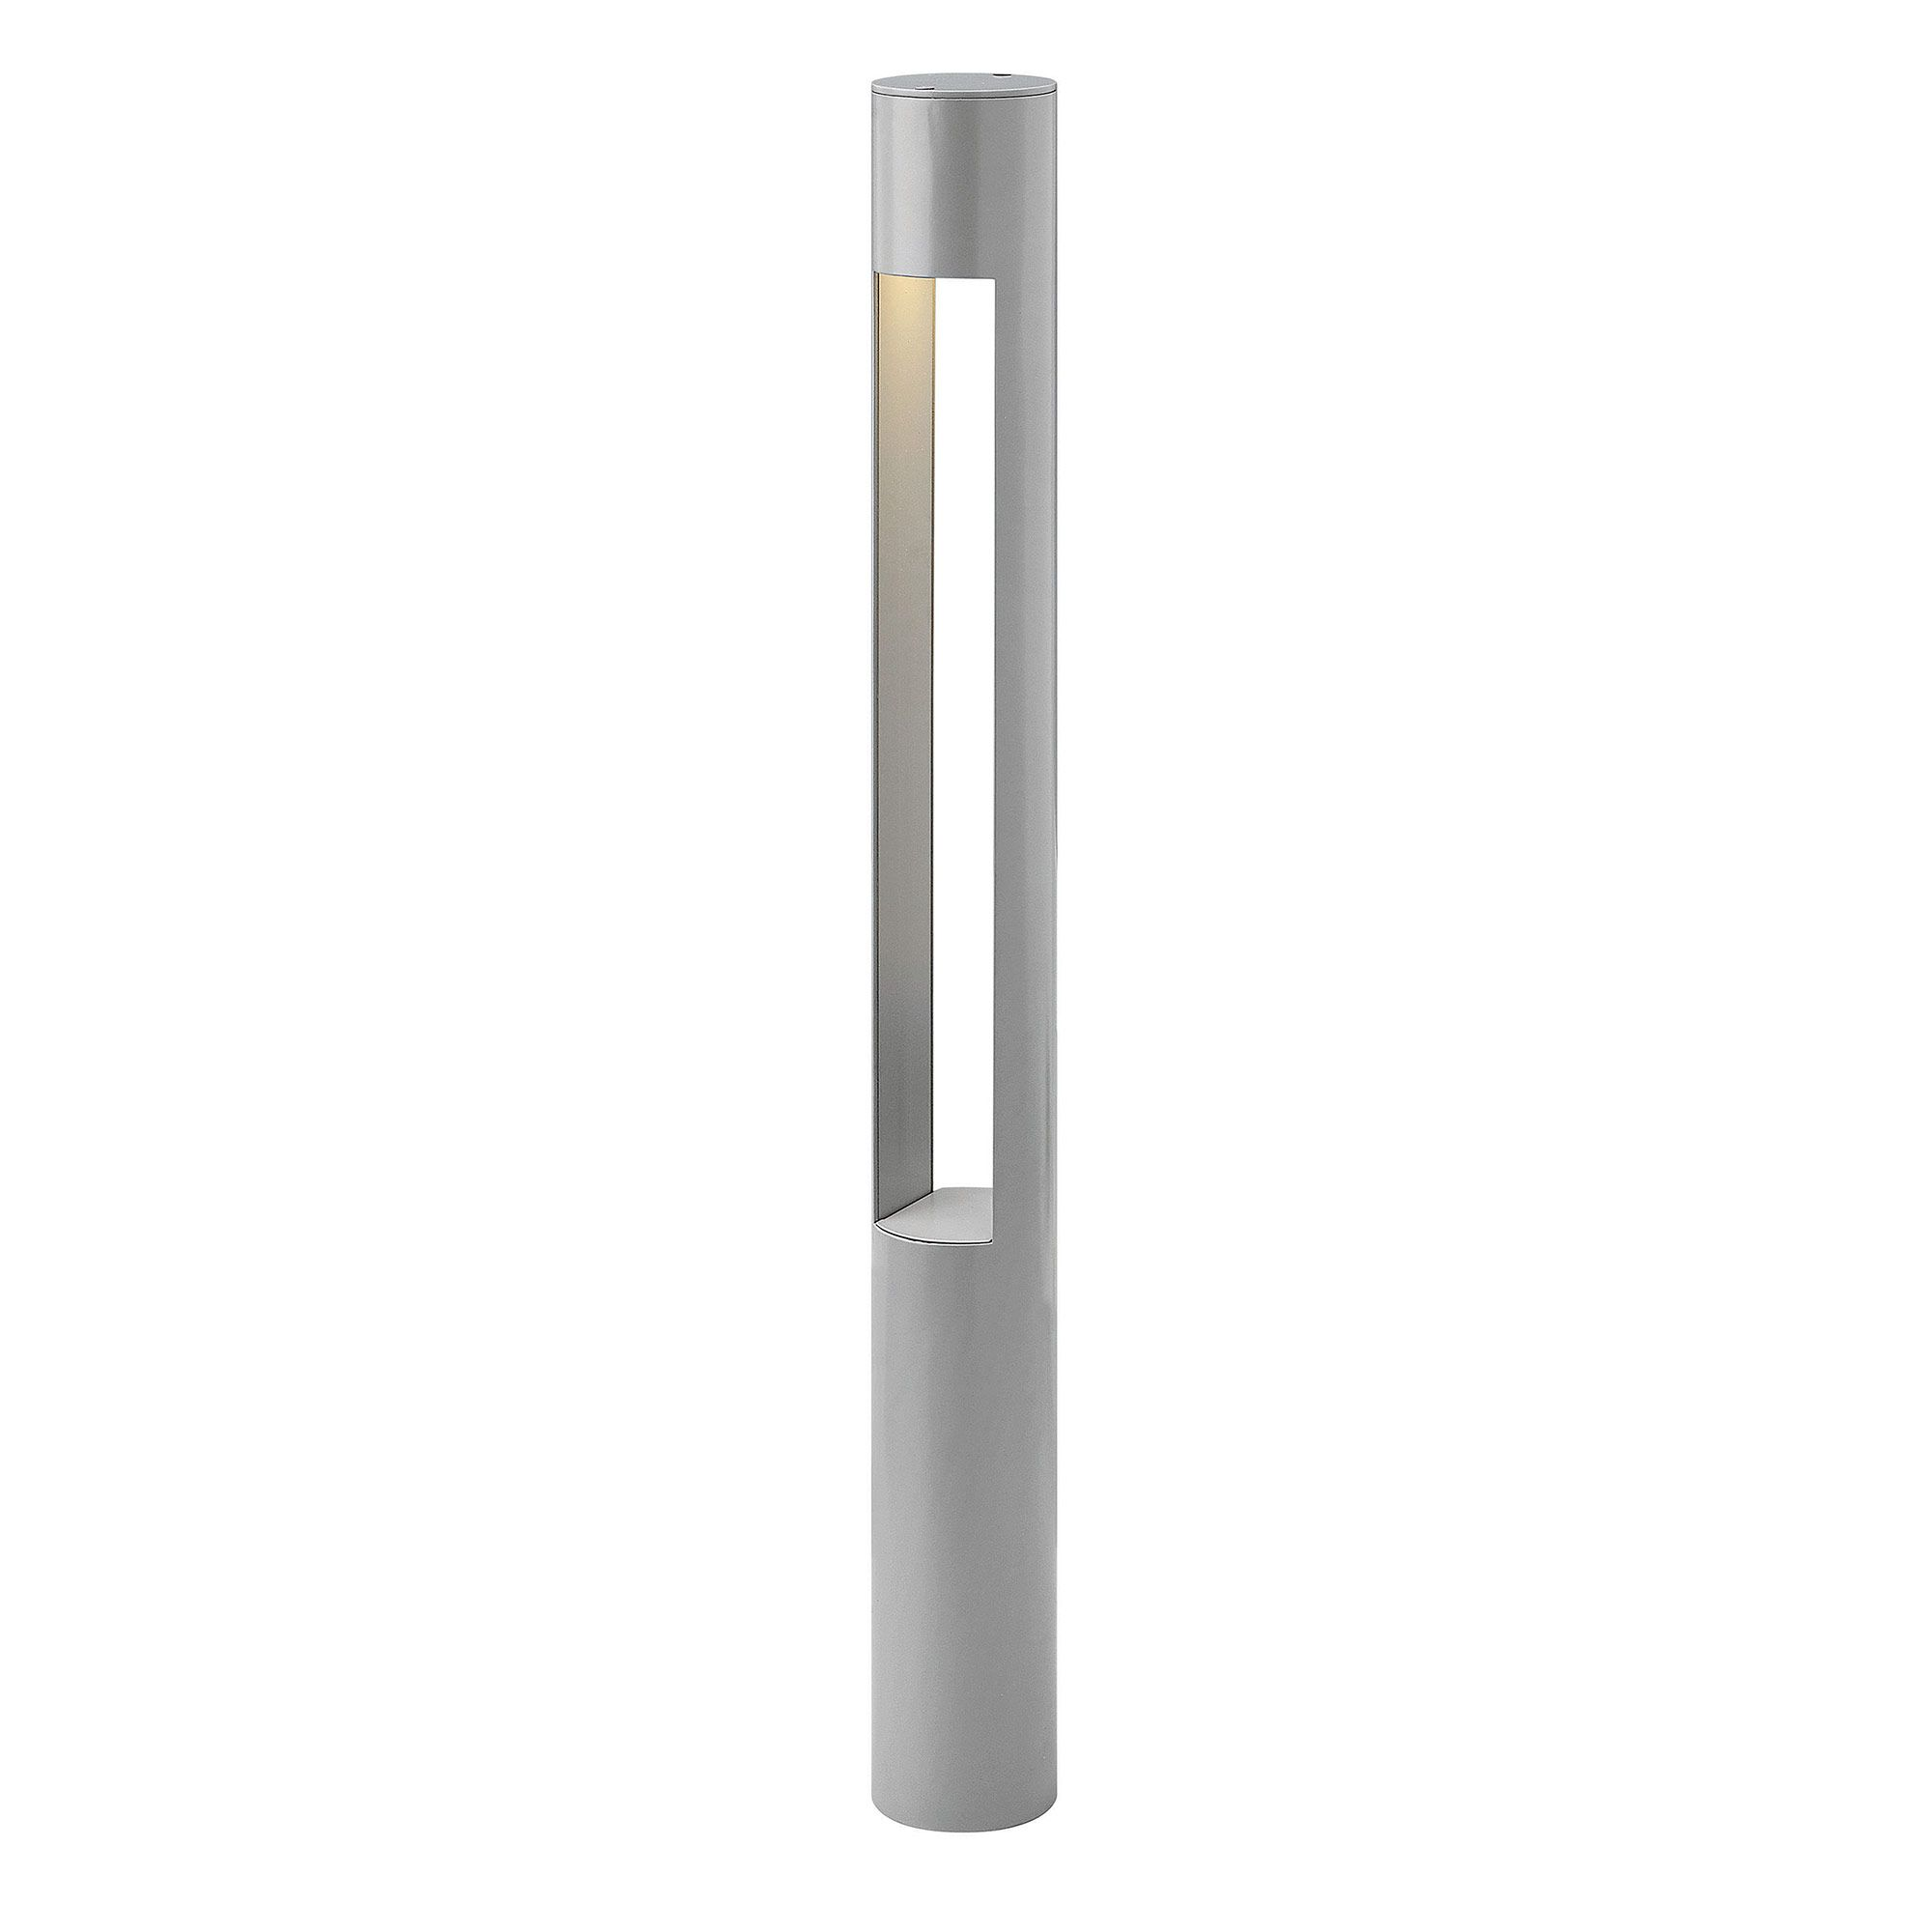 Atlantis Round 12v Bollard By Hinkley Lighting 15601tt Bollard Lighting Hinkley Lighting Outdoor Lighting Landscape